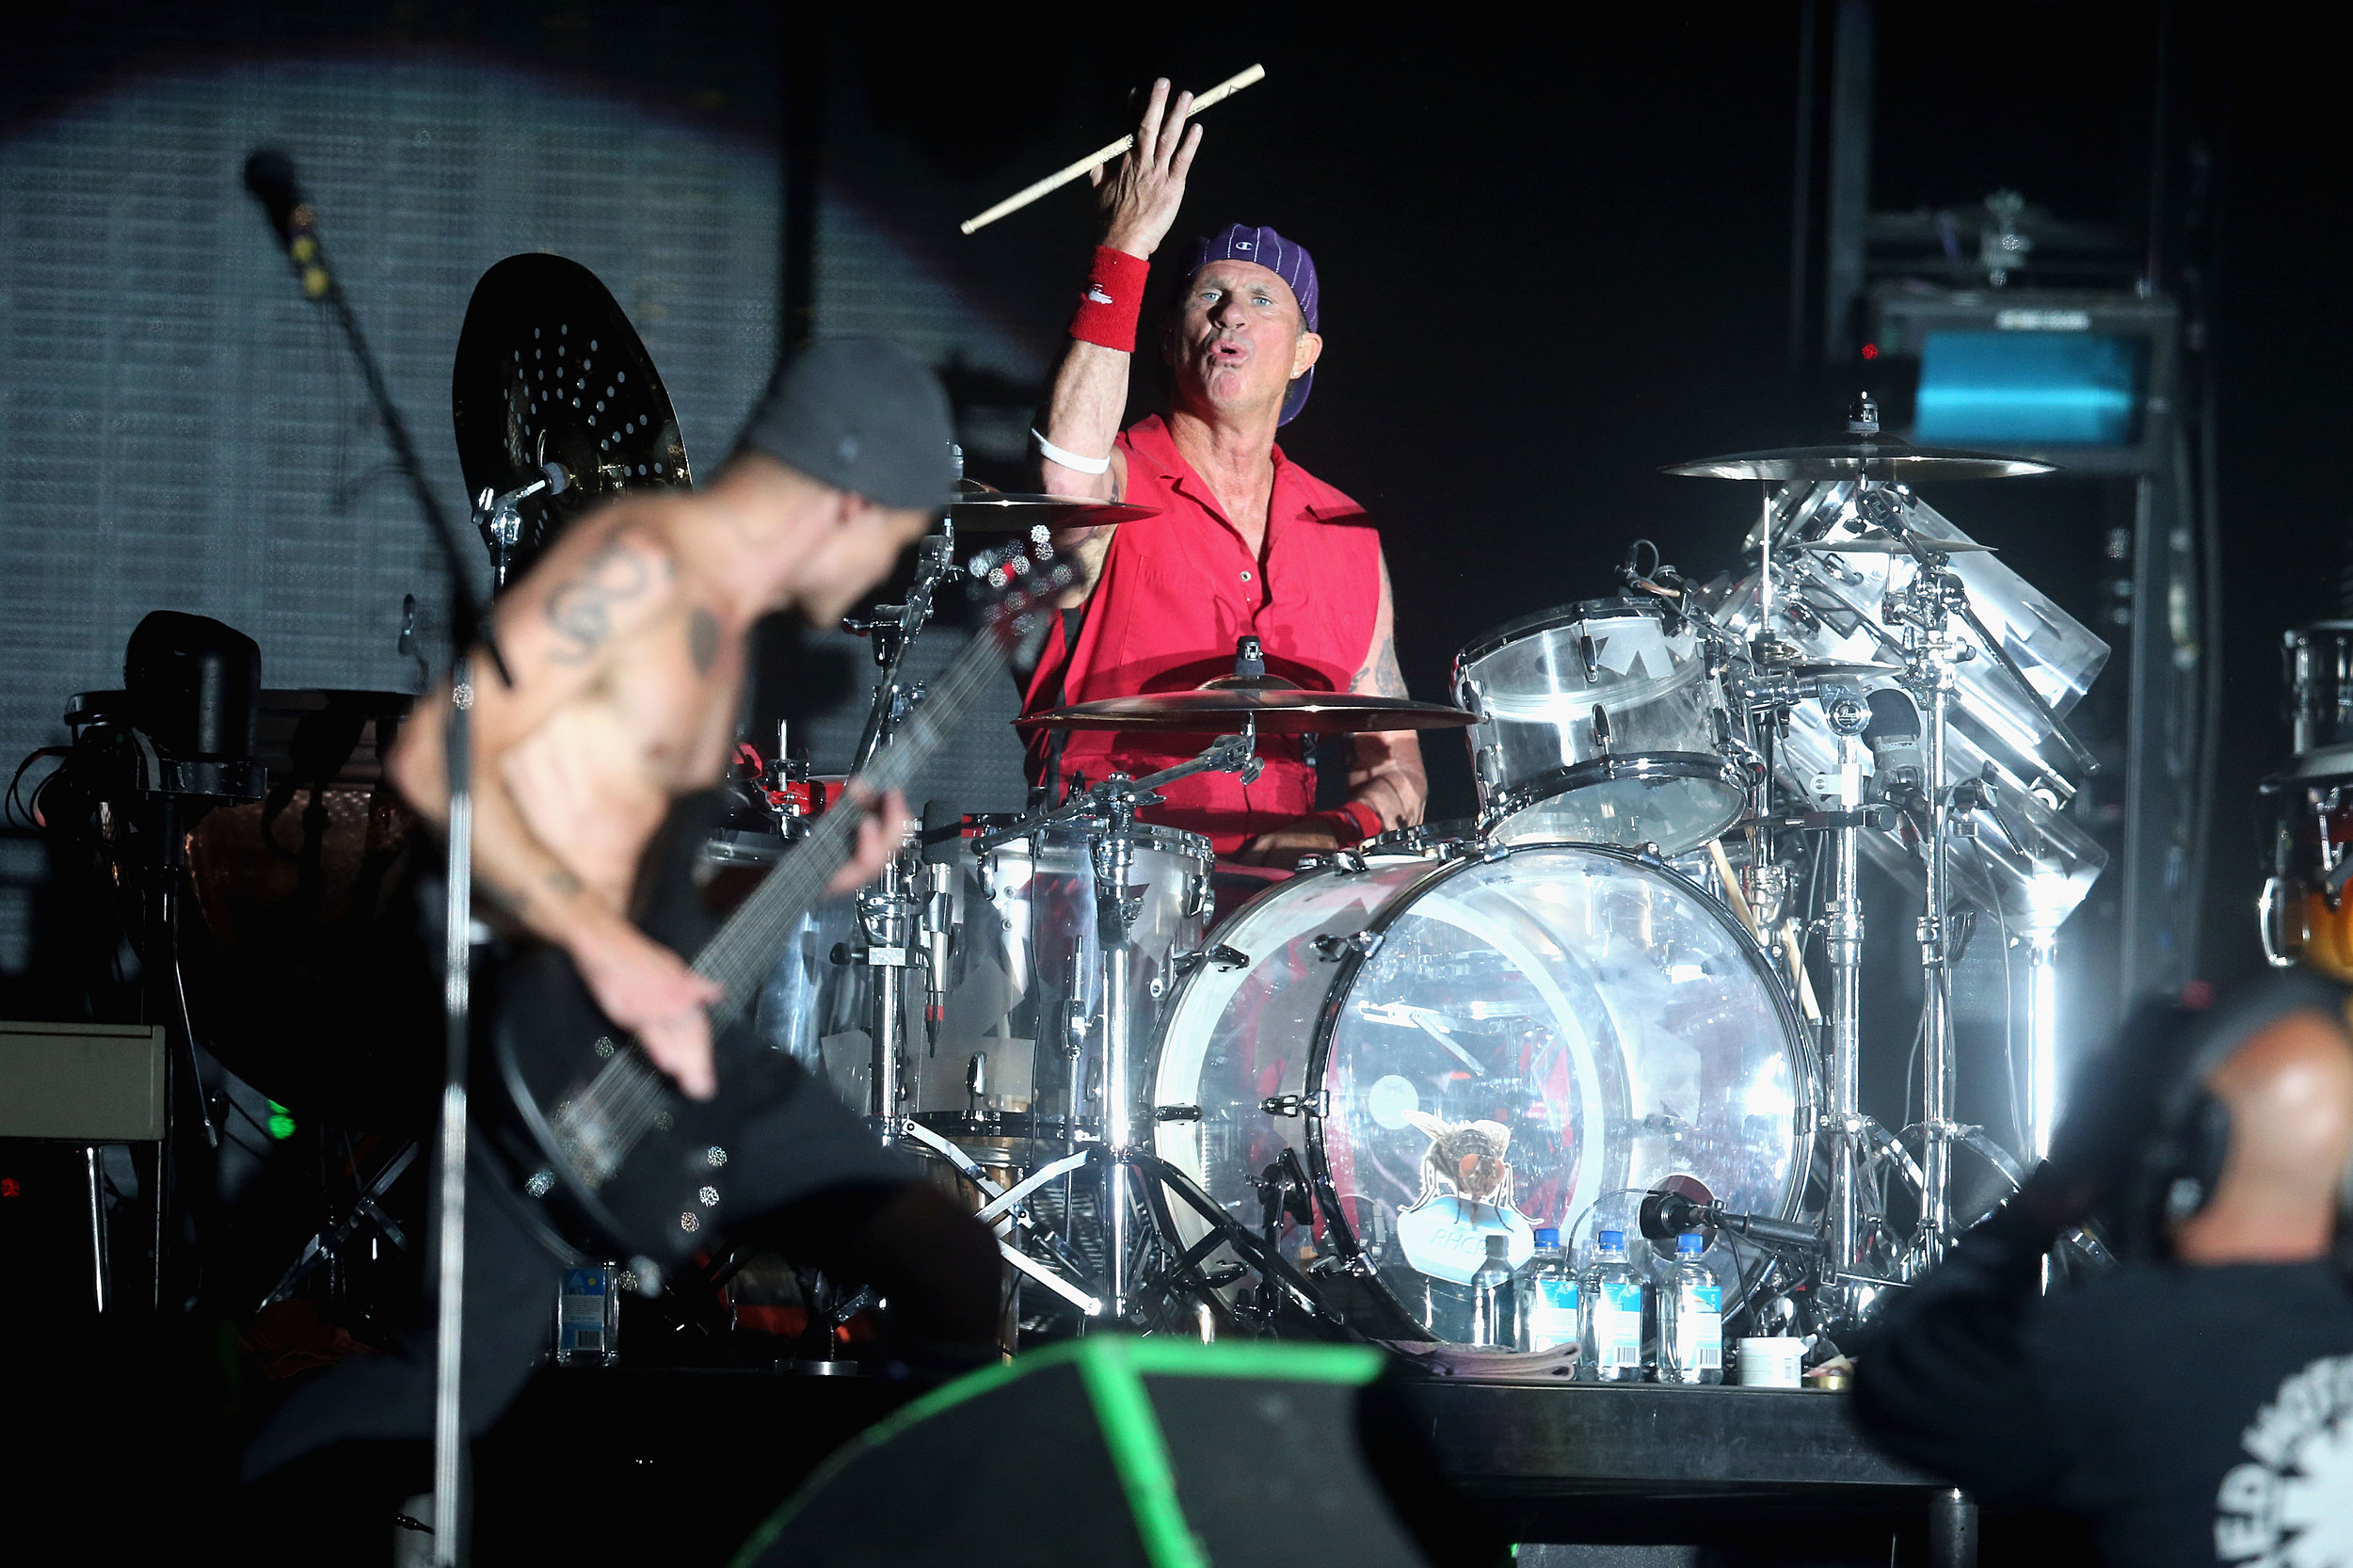 red hot chili peppers promise early end to super bowl show